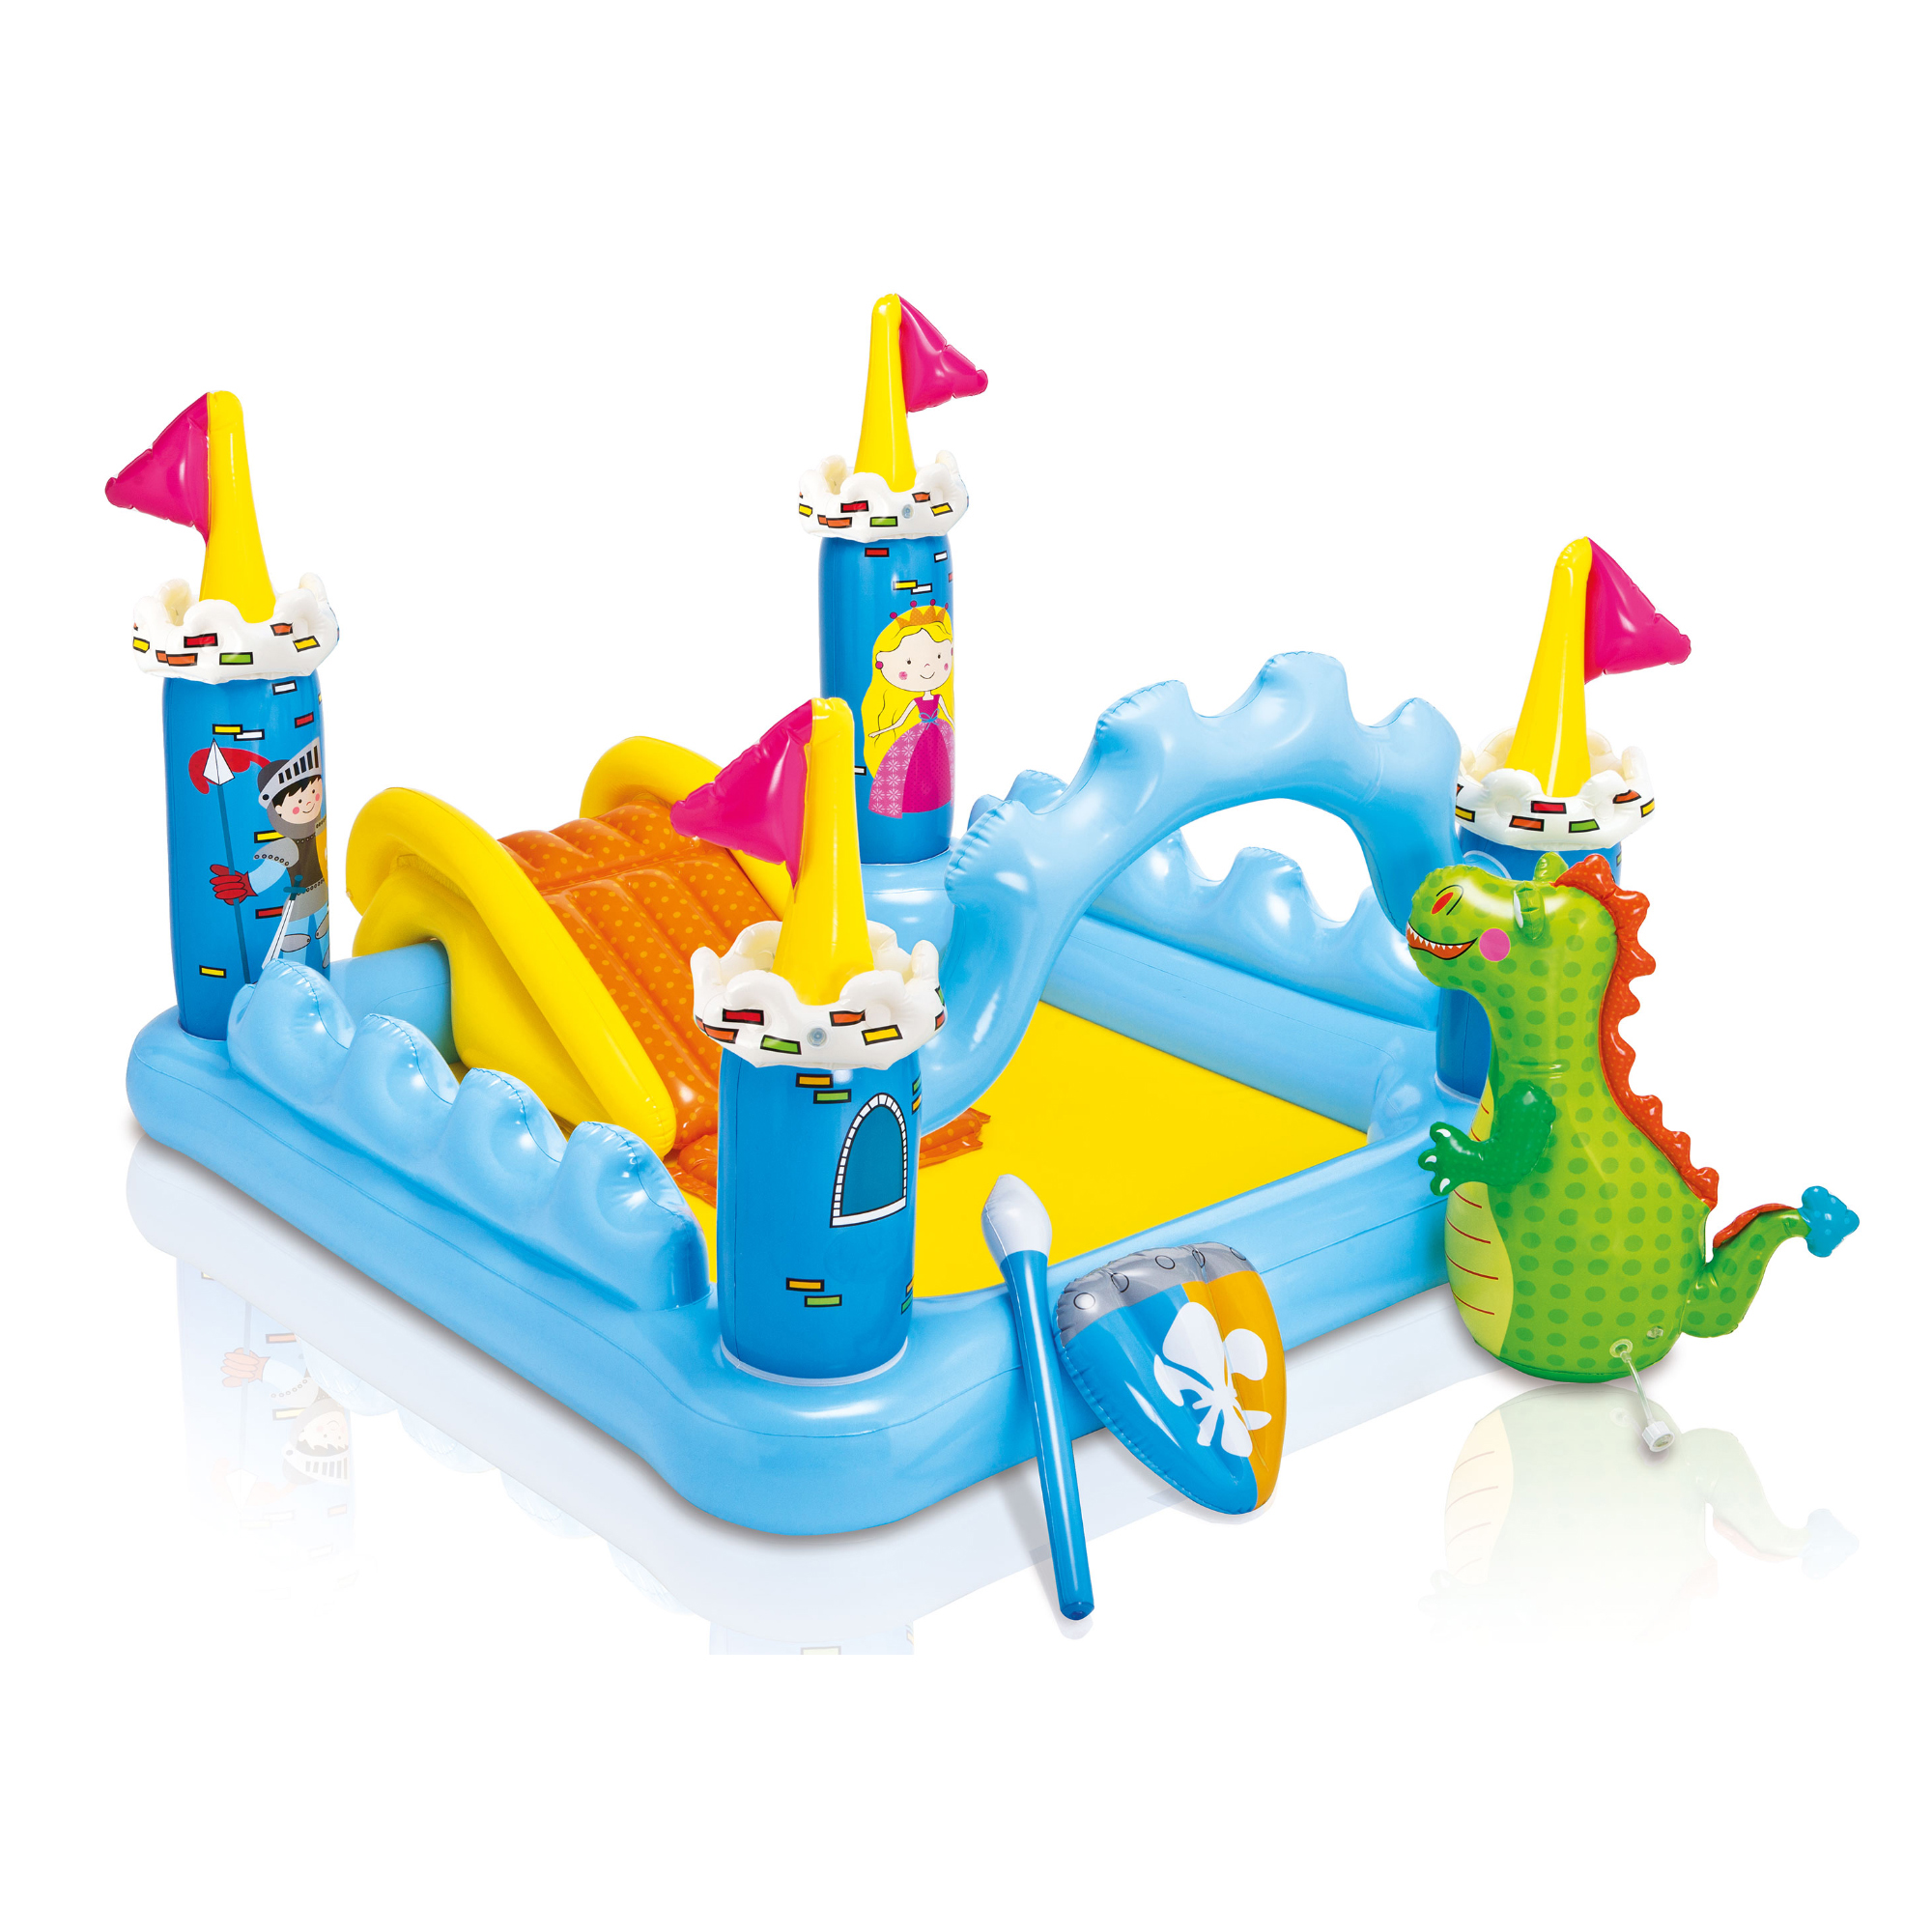 Intex - Fantasy Castle Pool and Play Center